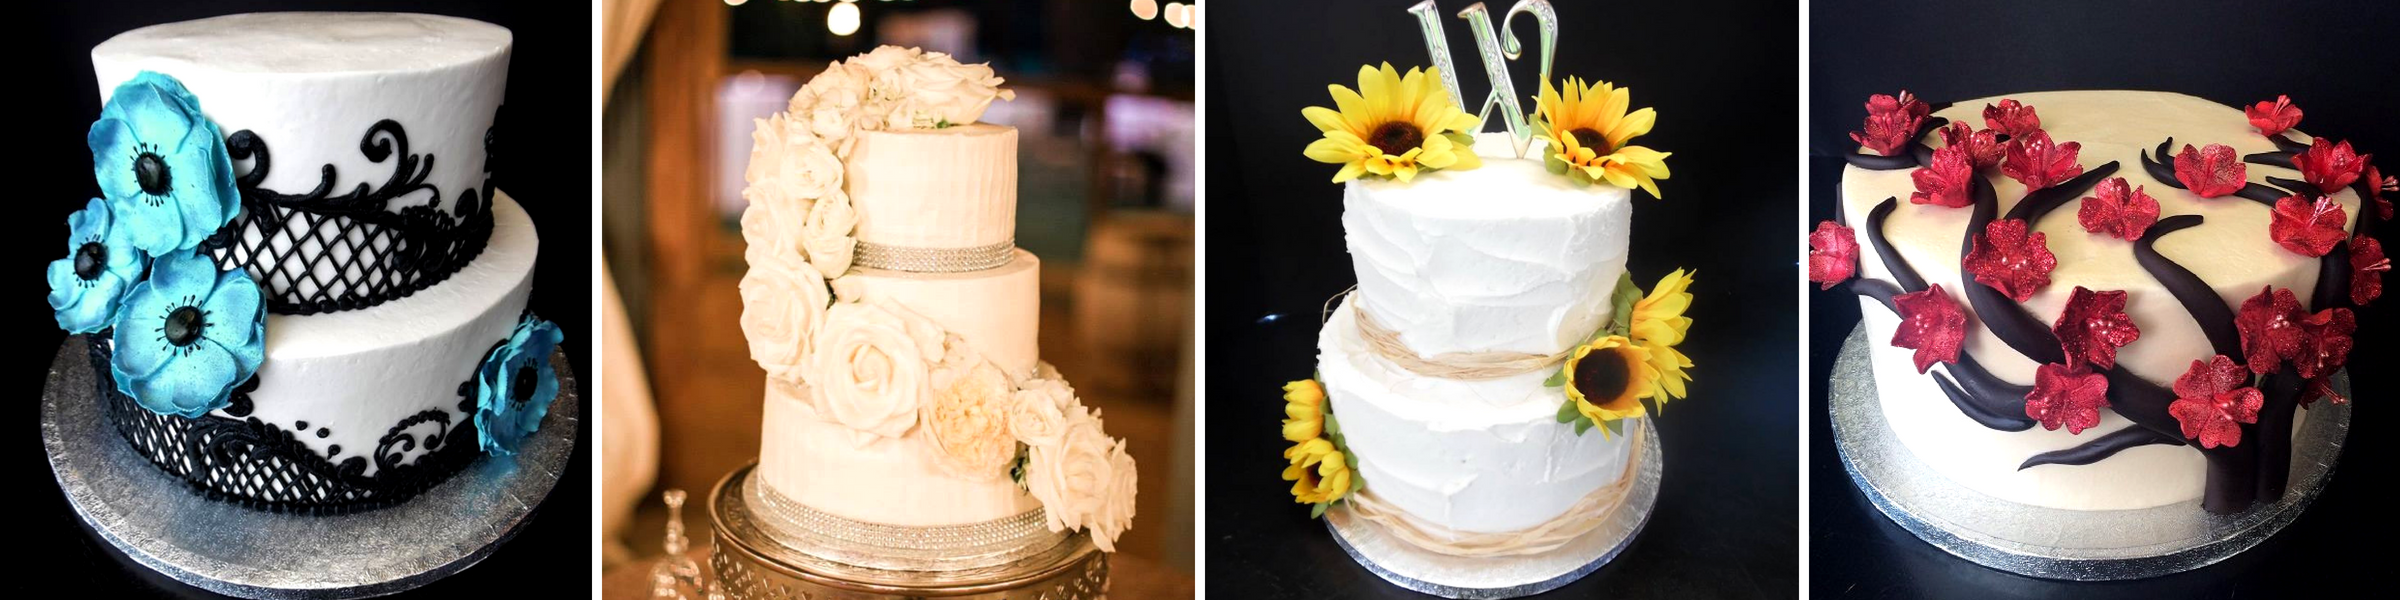 wedding and event cakes